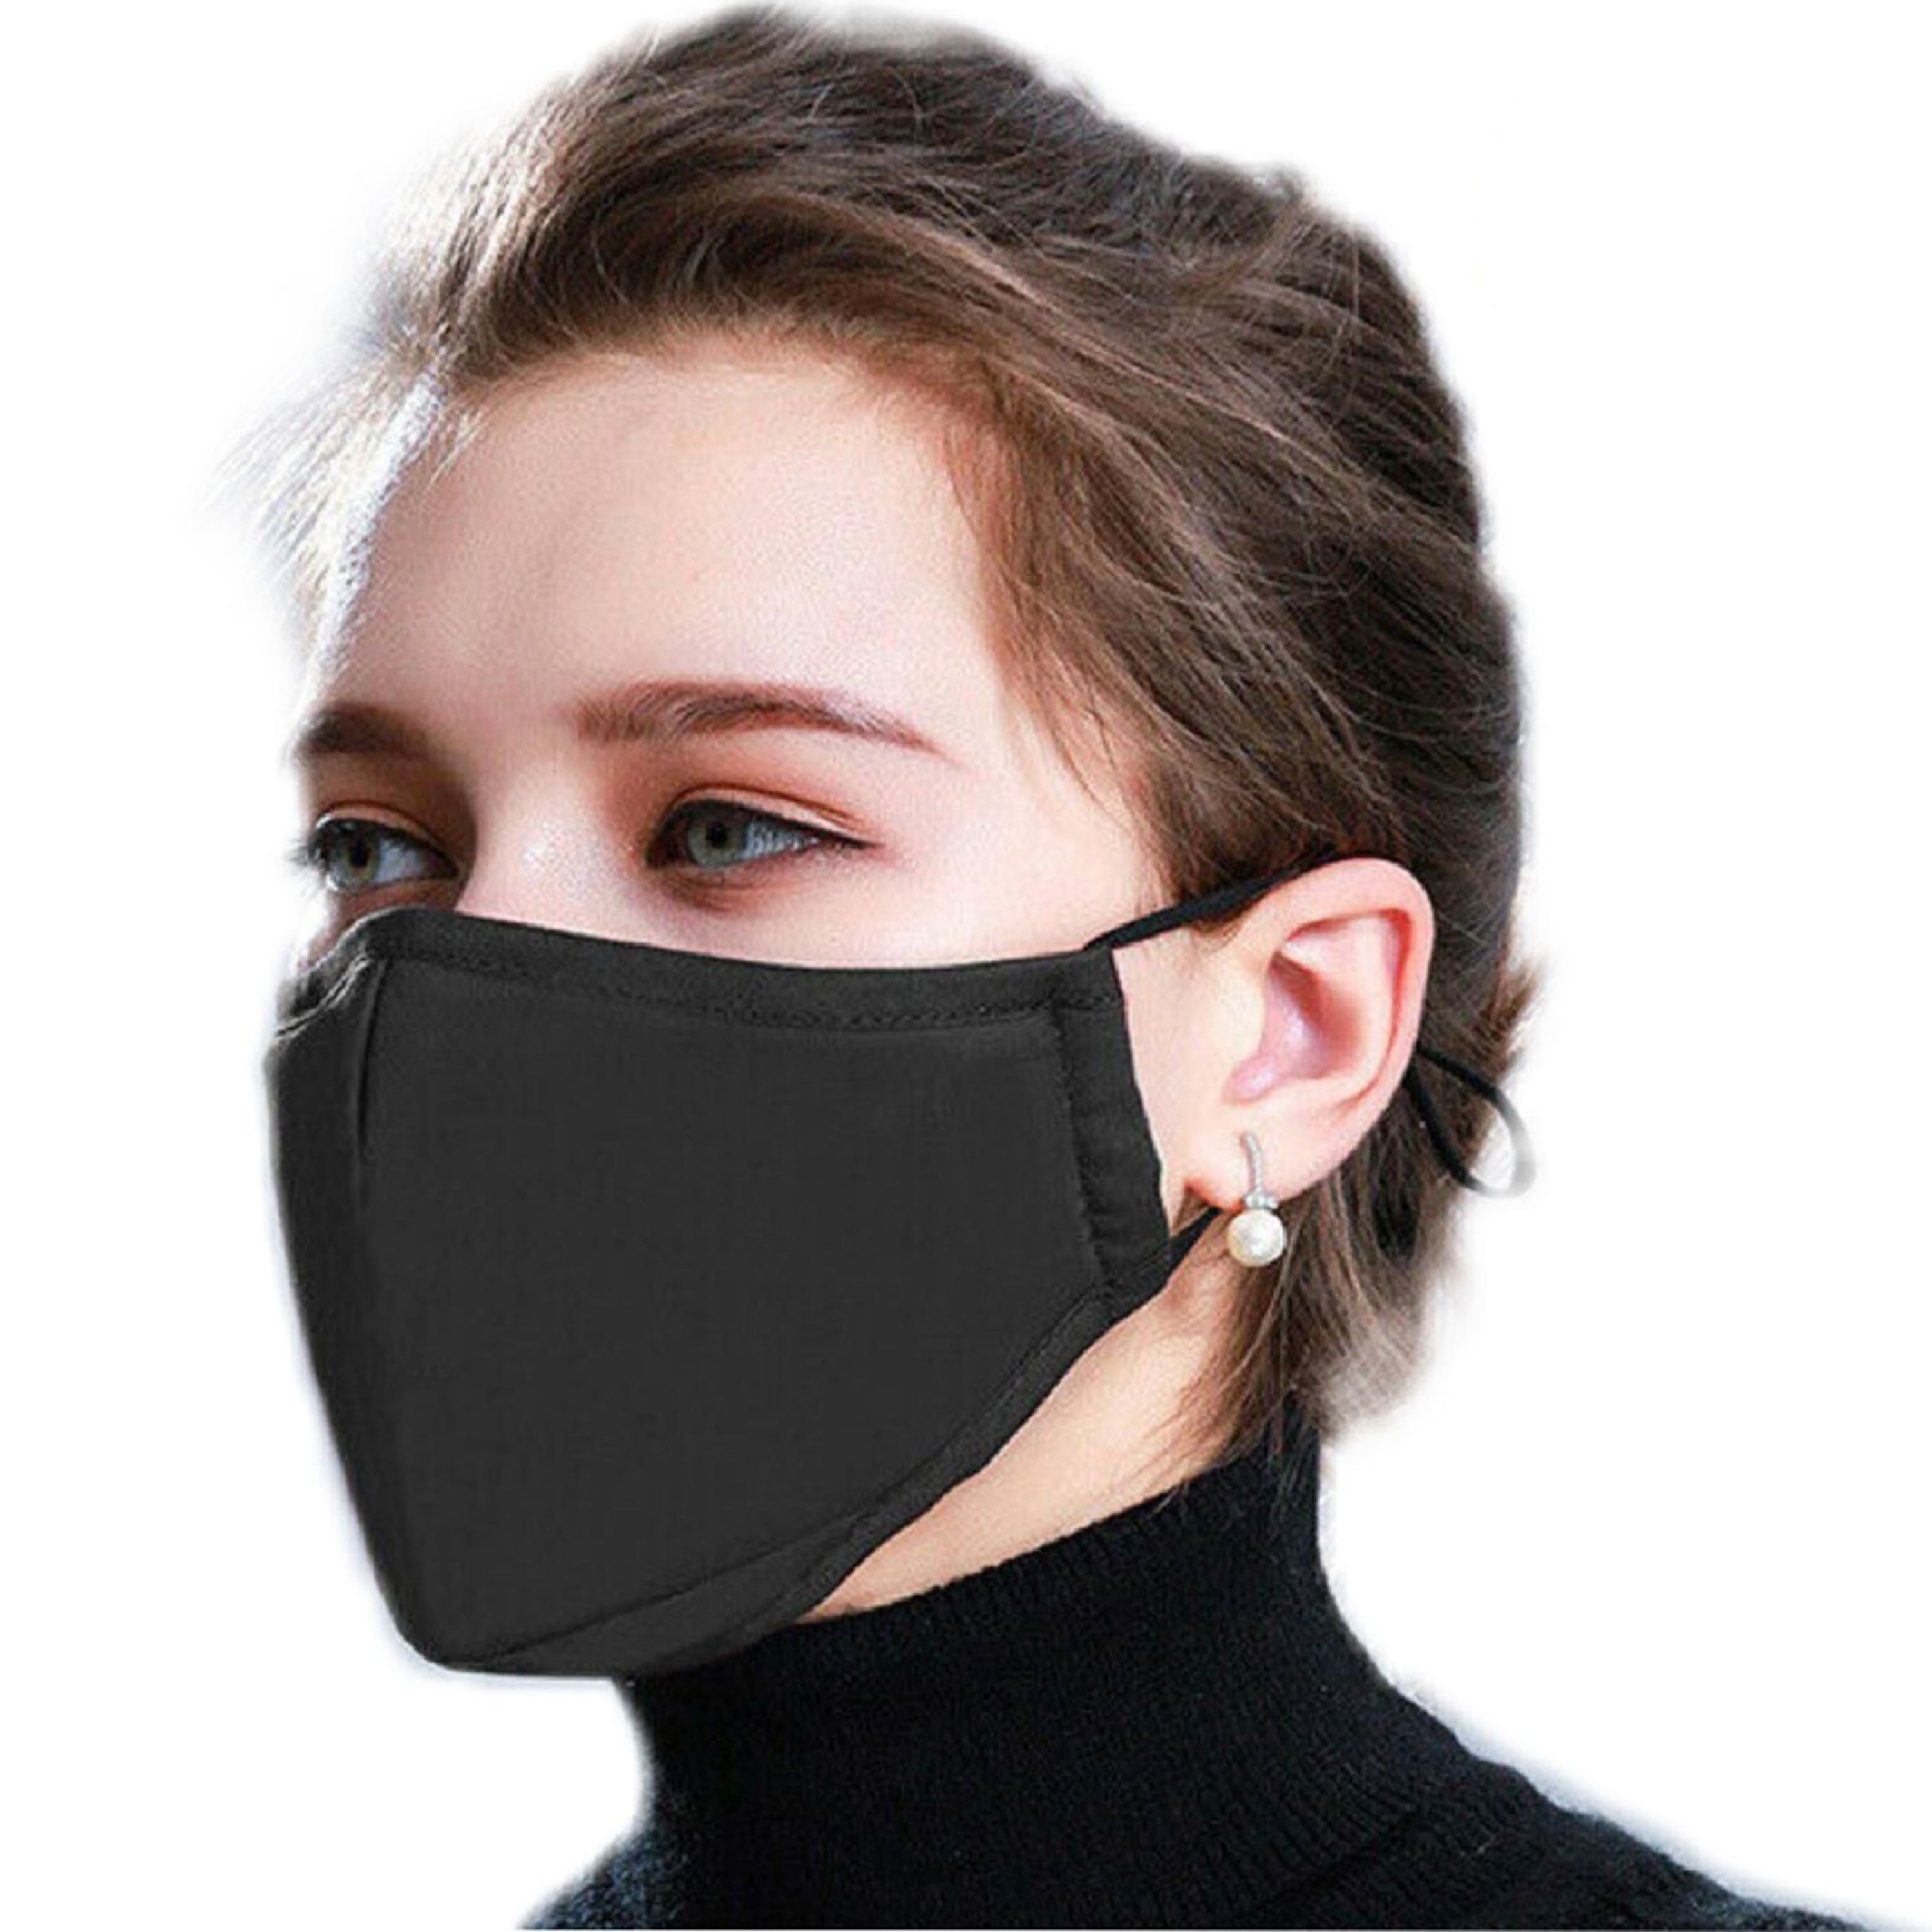 Homemade Face Mask With Filter Pocket, Adjustable Elastic Ear Loop With Nose Wire Reusable Washable